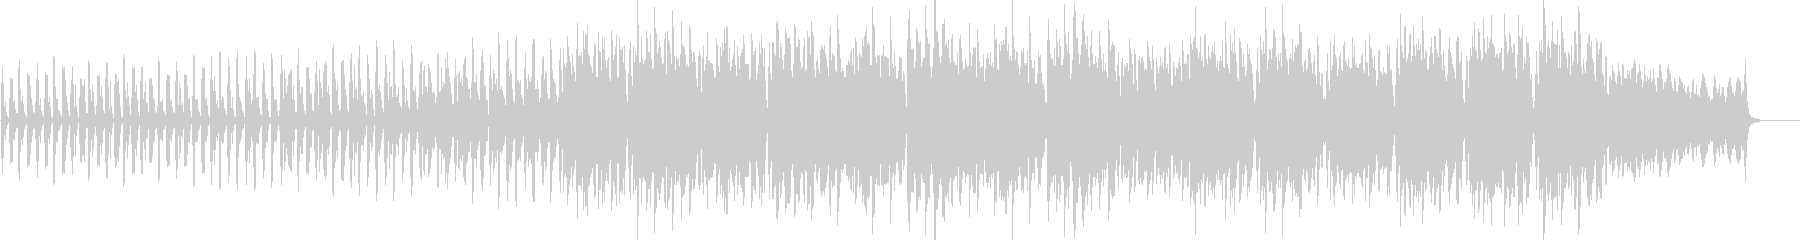 A song with a calm melody's unreproduced waveform